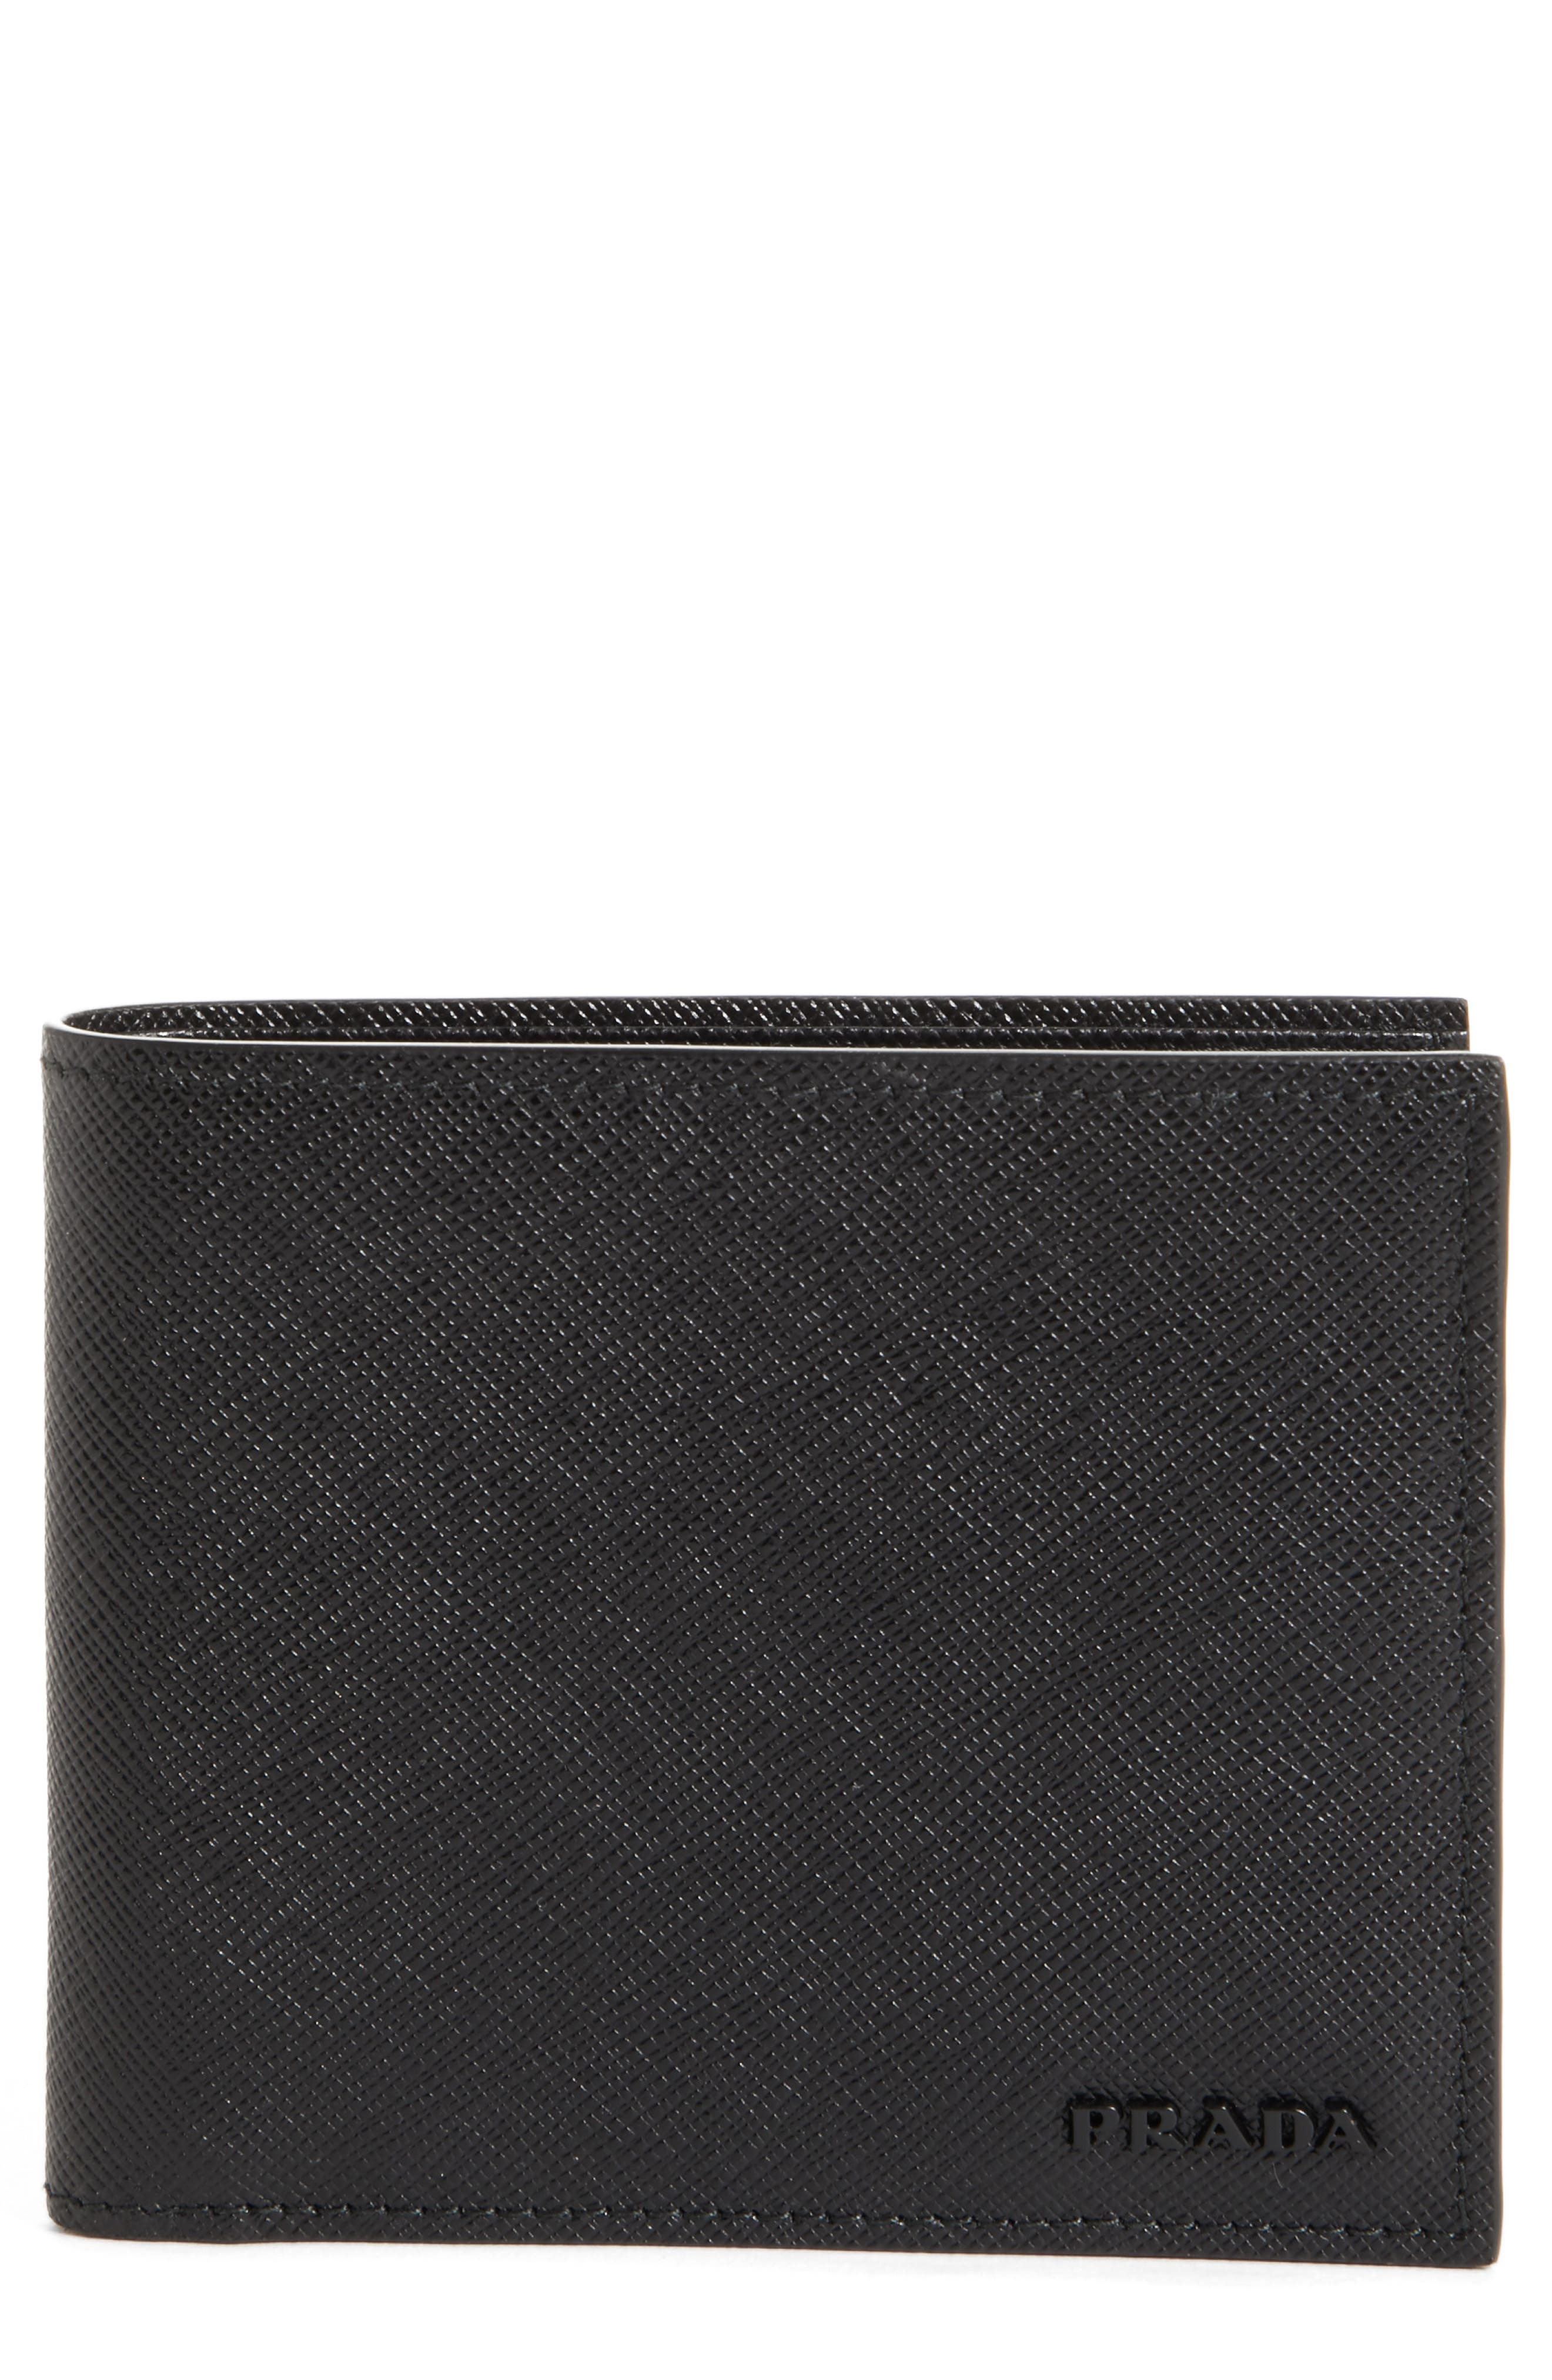 Main Image - Prada Saffiano Leather Bifold Wallet